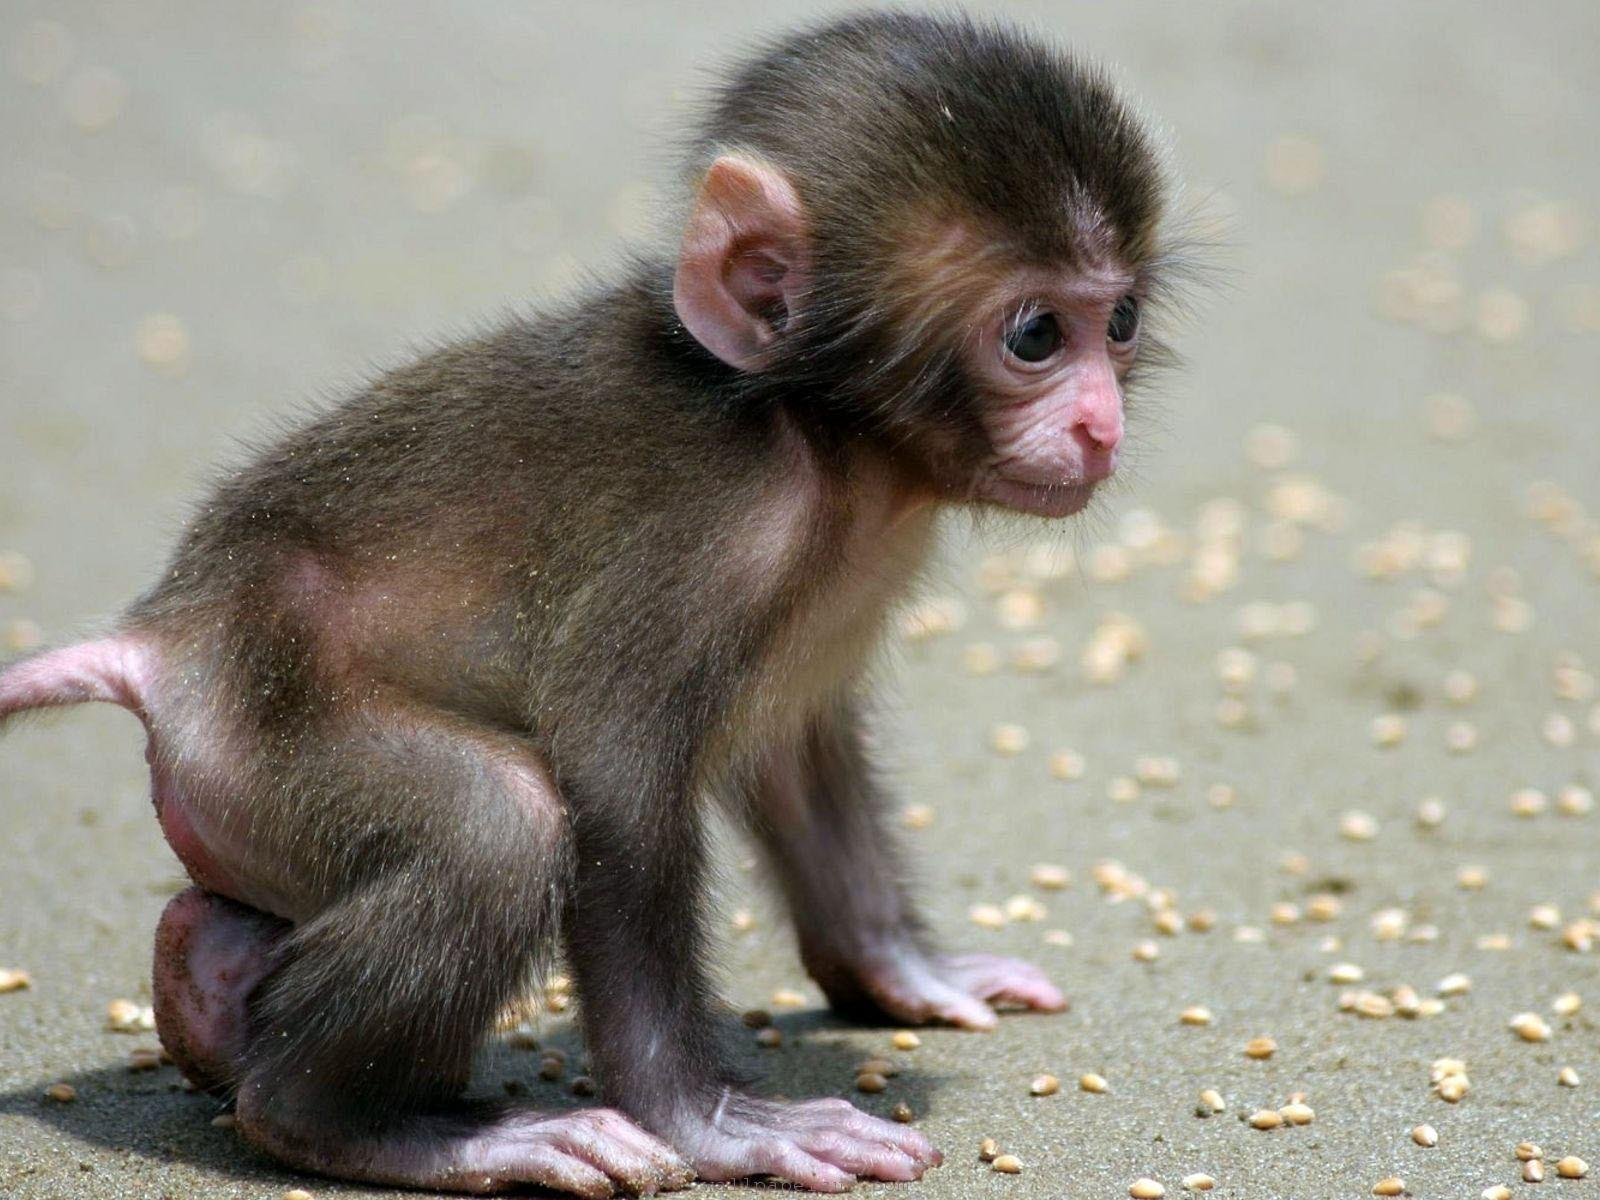 Baby Animal Wallpapers - Wallpaper Cave